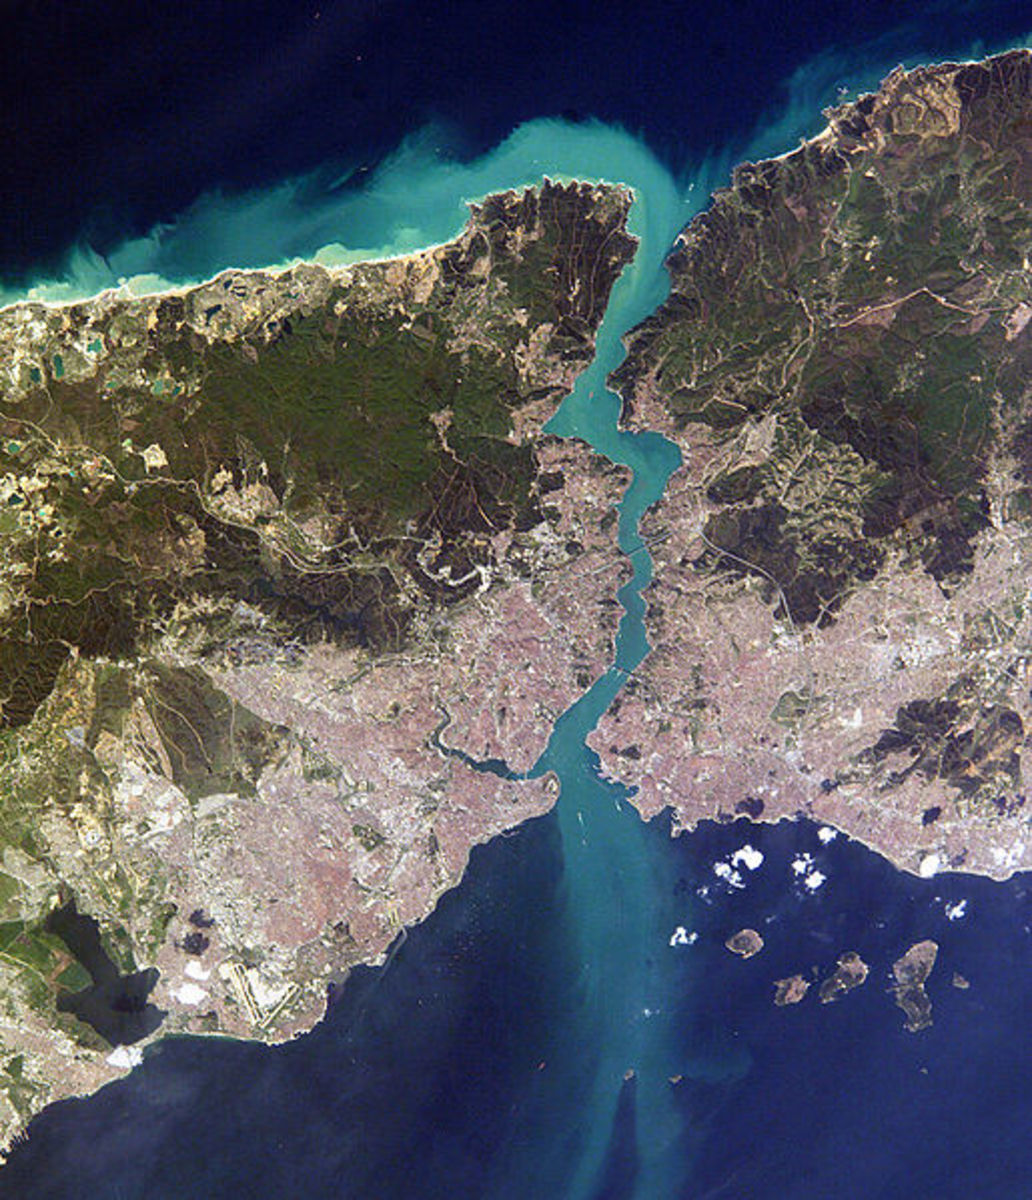 Arial shot of Istanbul, Turkey with the Bosphorus waterway running through the city.  The left is Europe and the right is Asia.